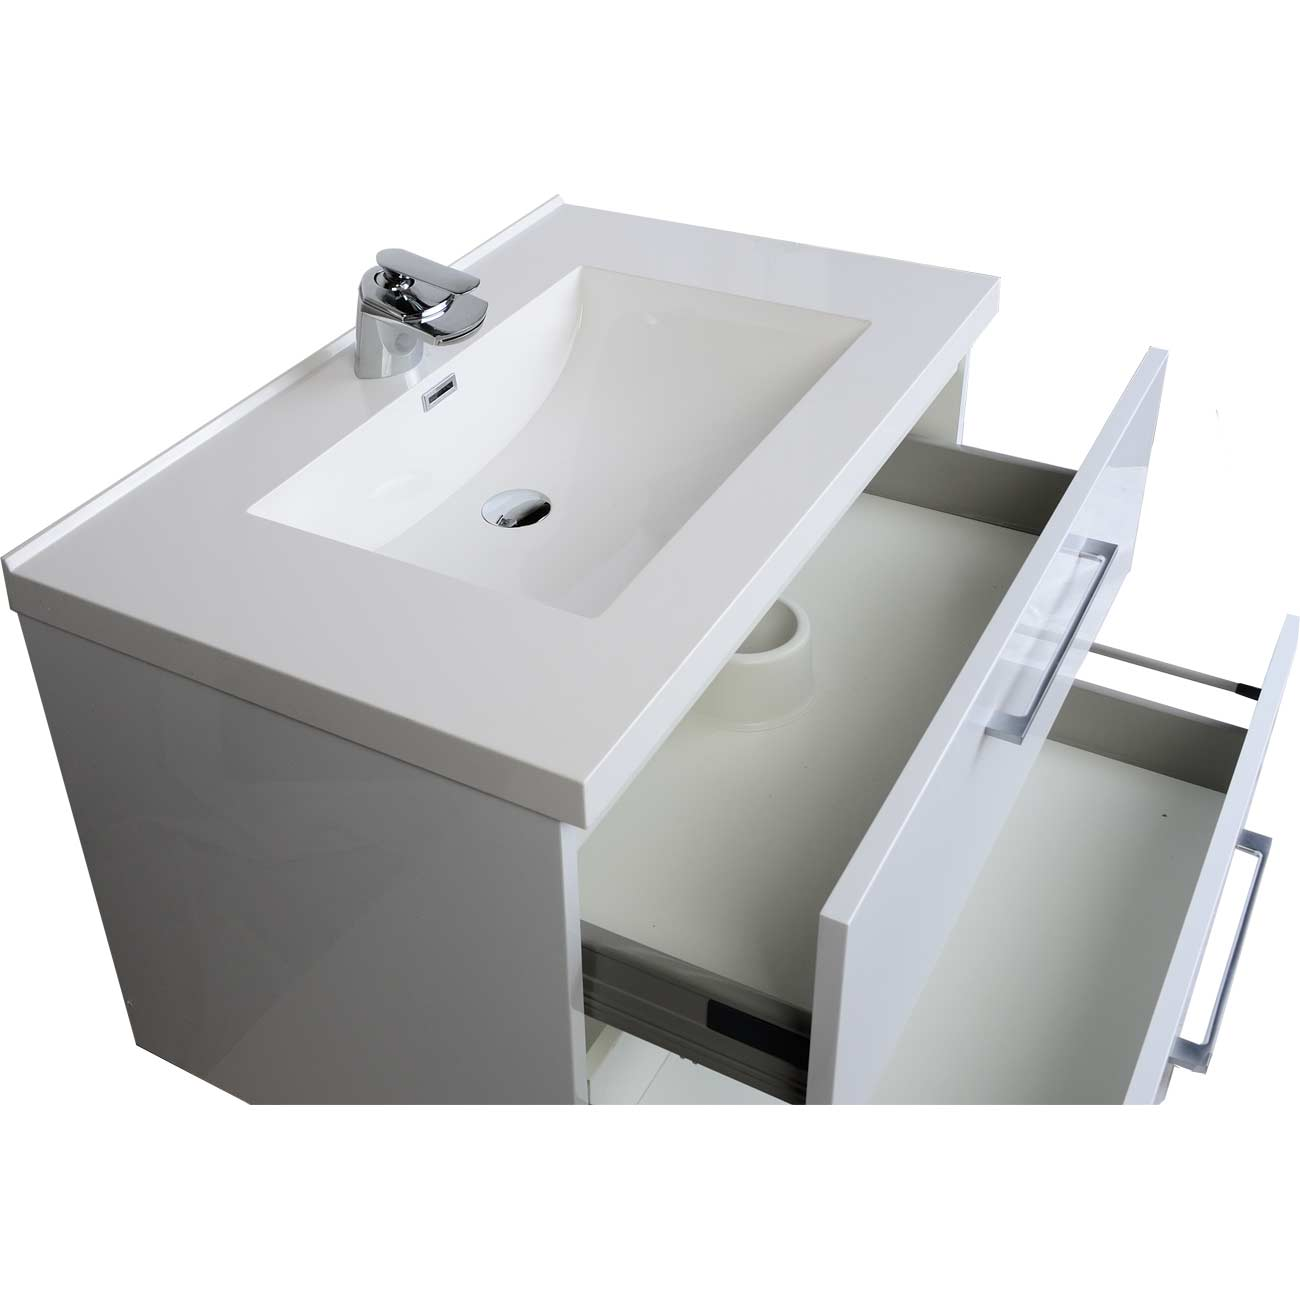 Bathroom vanity san francisco - 33 5 Wall Mount Contemporary Bathroom Vanity Set In High Gloss White Tn Ta860 Hgw